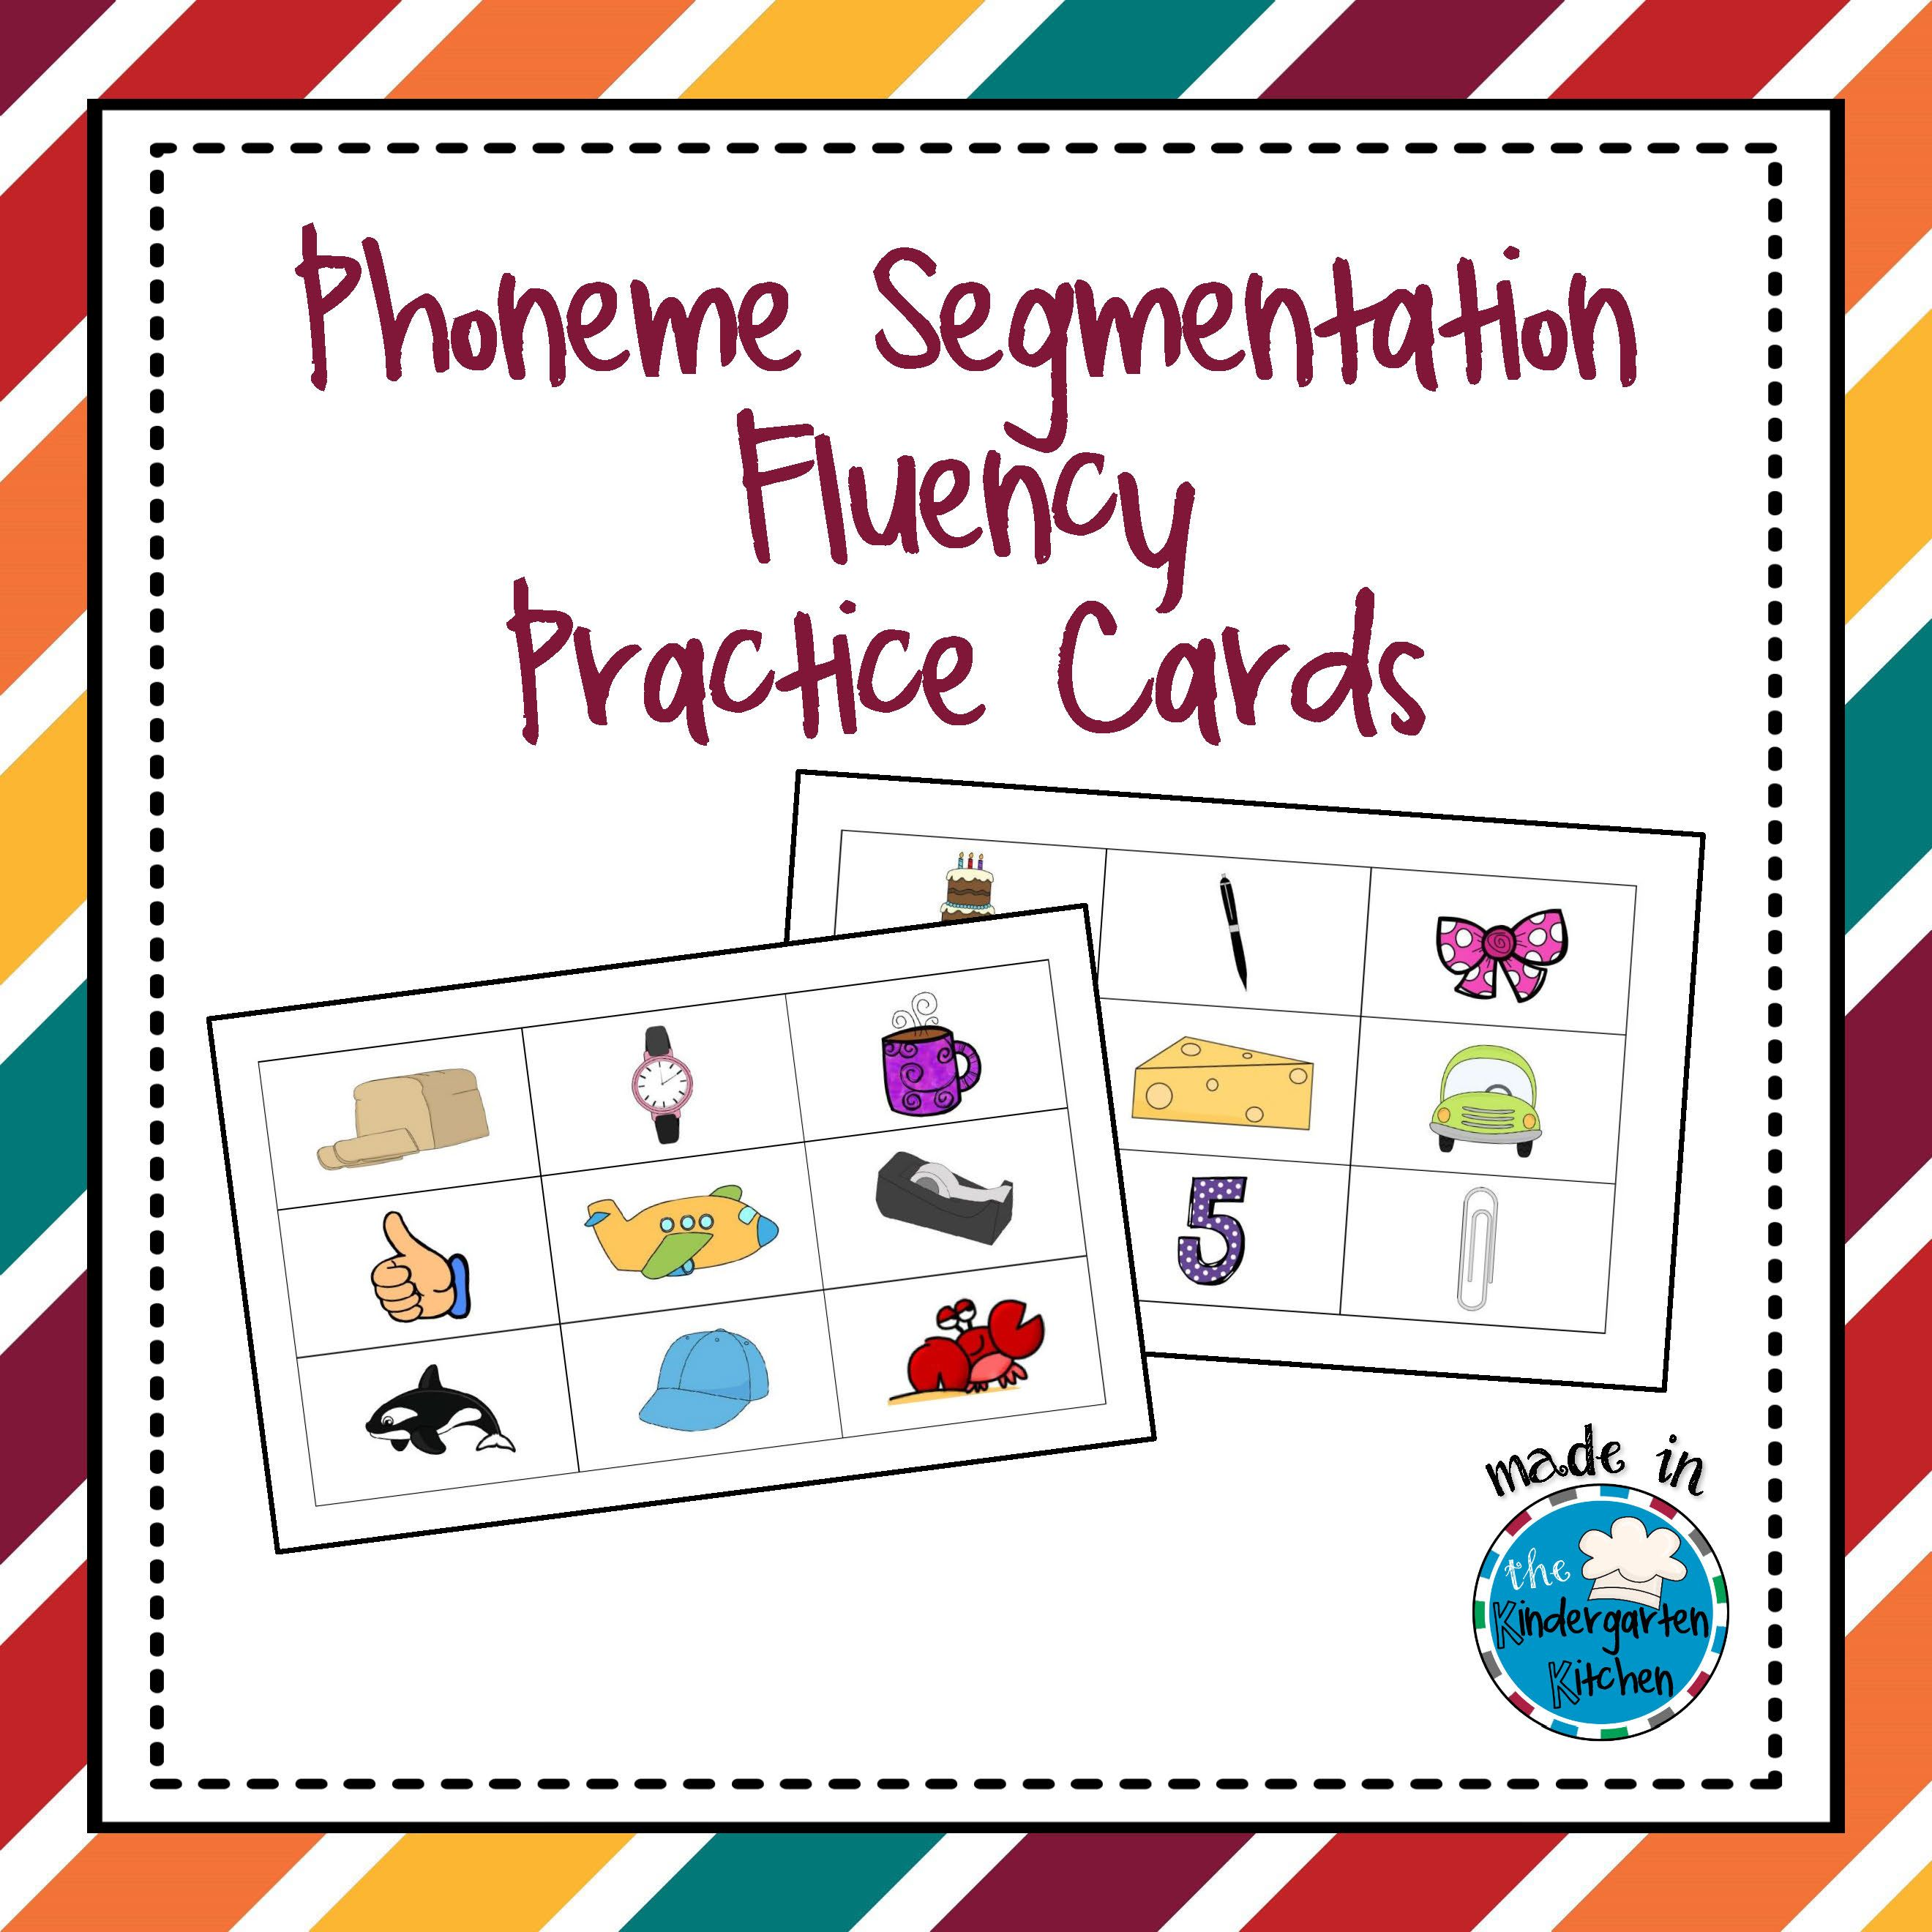 Phoneme Segmentation Fluency Practice Cards